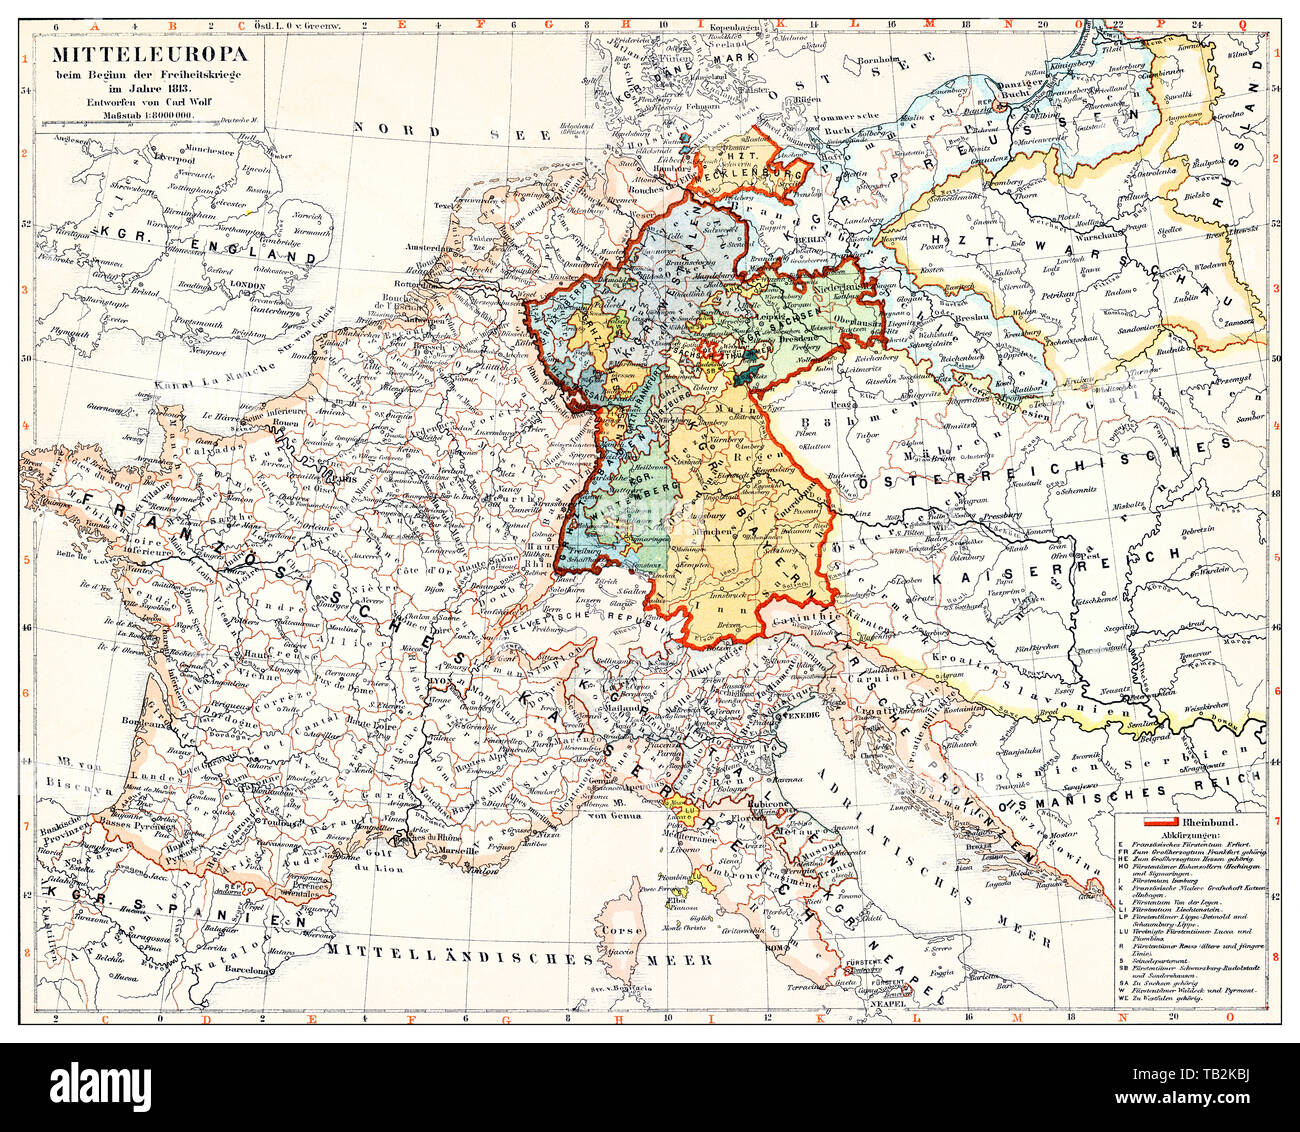 Map Of Central Germany.Historical Map Of Germany And Central Europe At The Beginning Of The